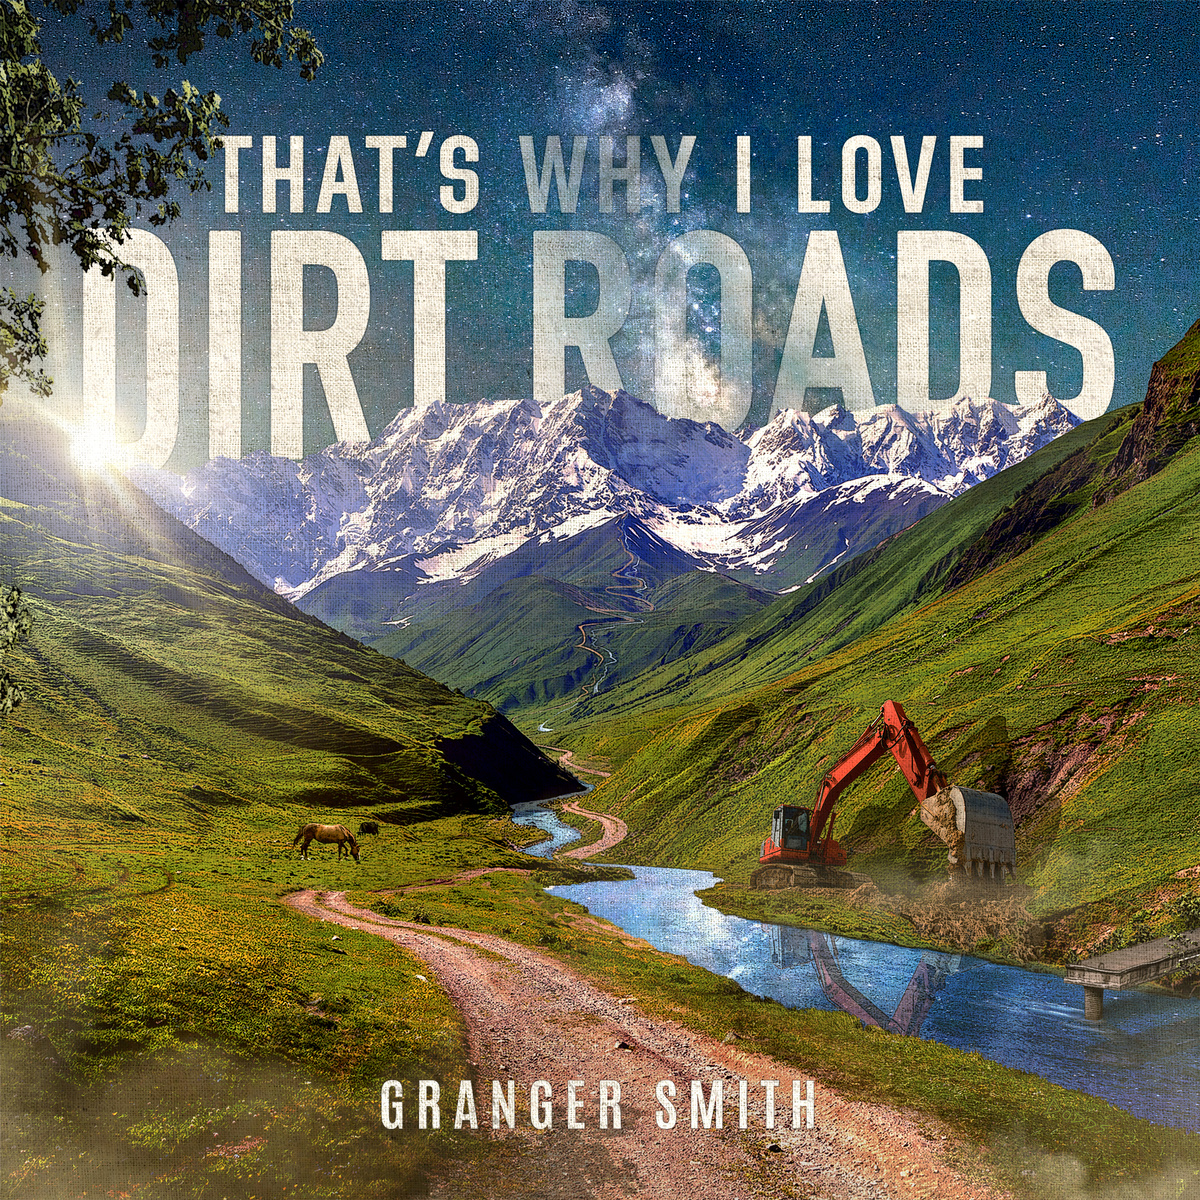 granger-smith-thats-why